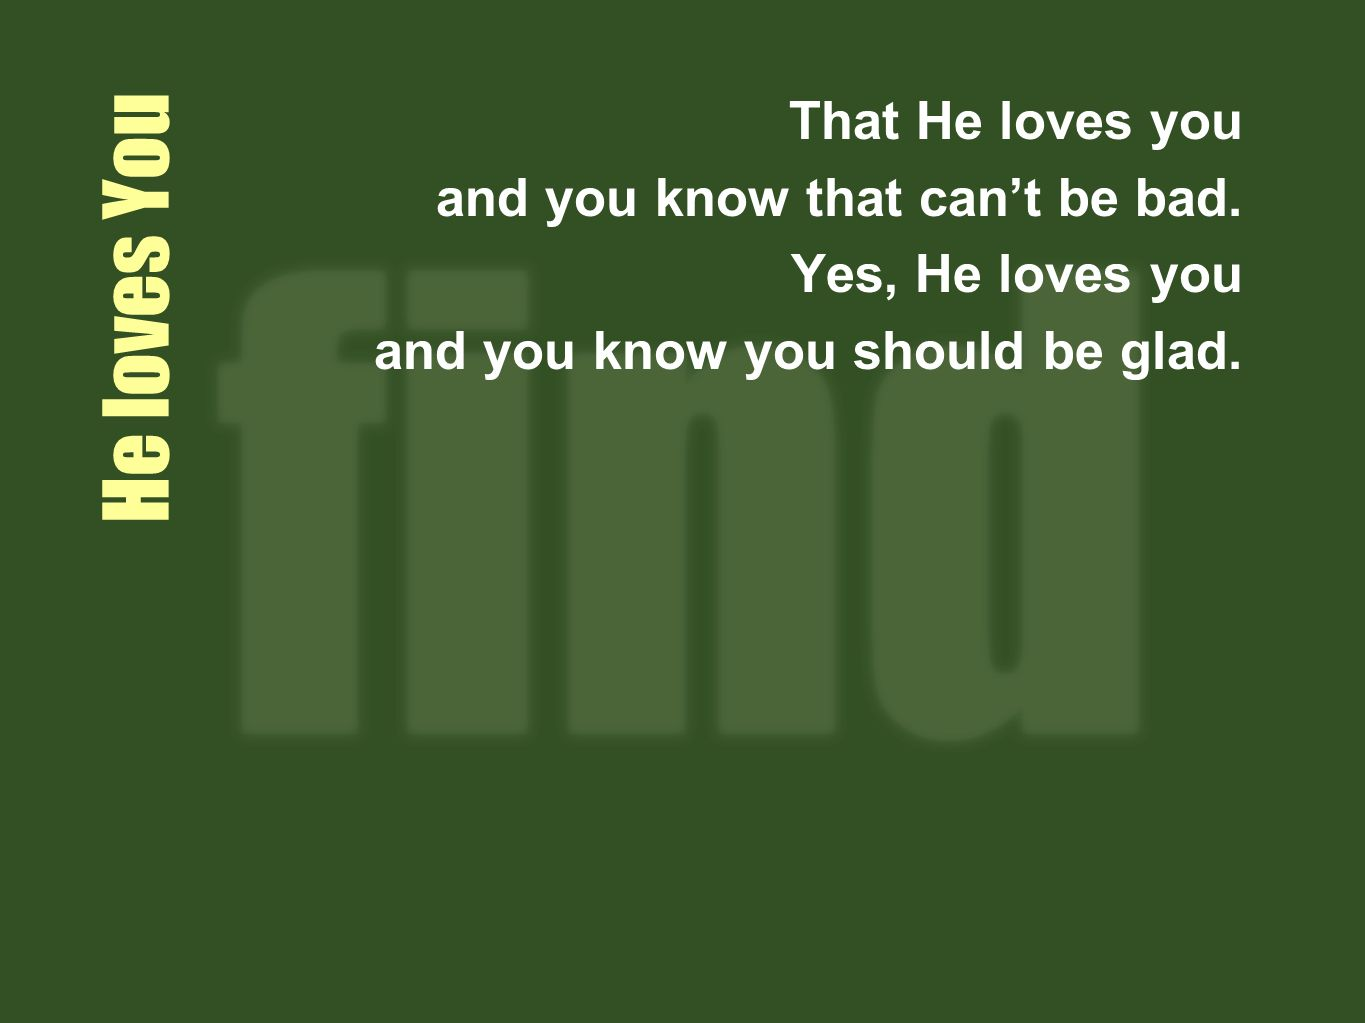 He loves You That He loves you and you know that cant be bad.